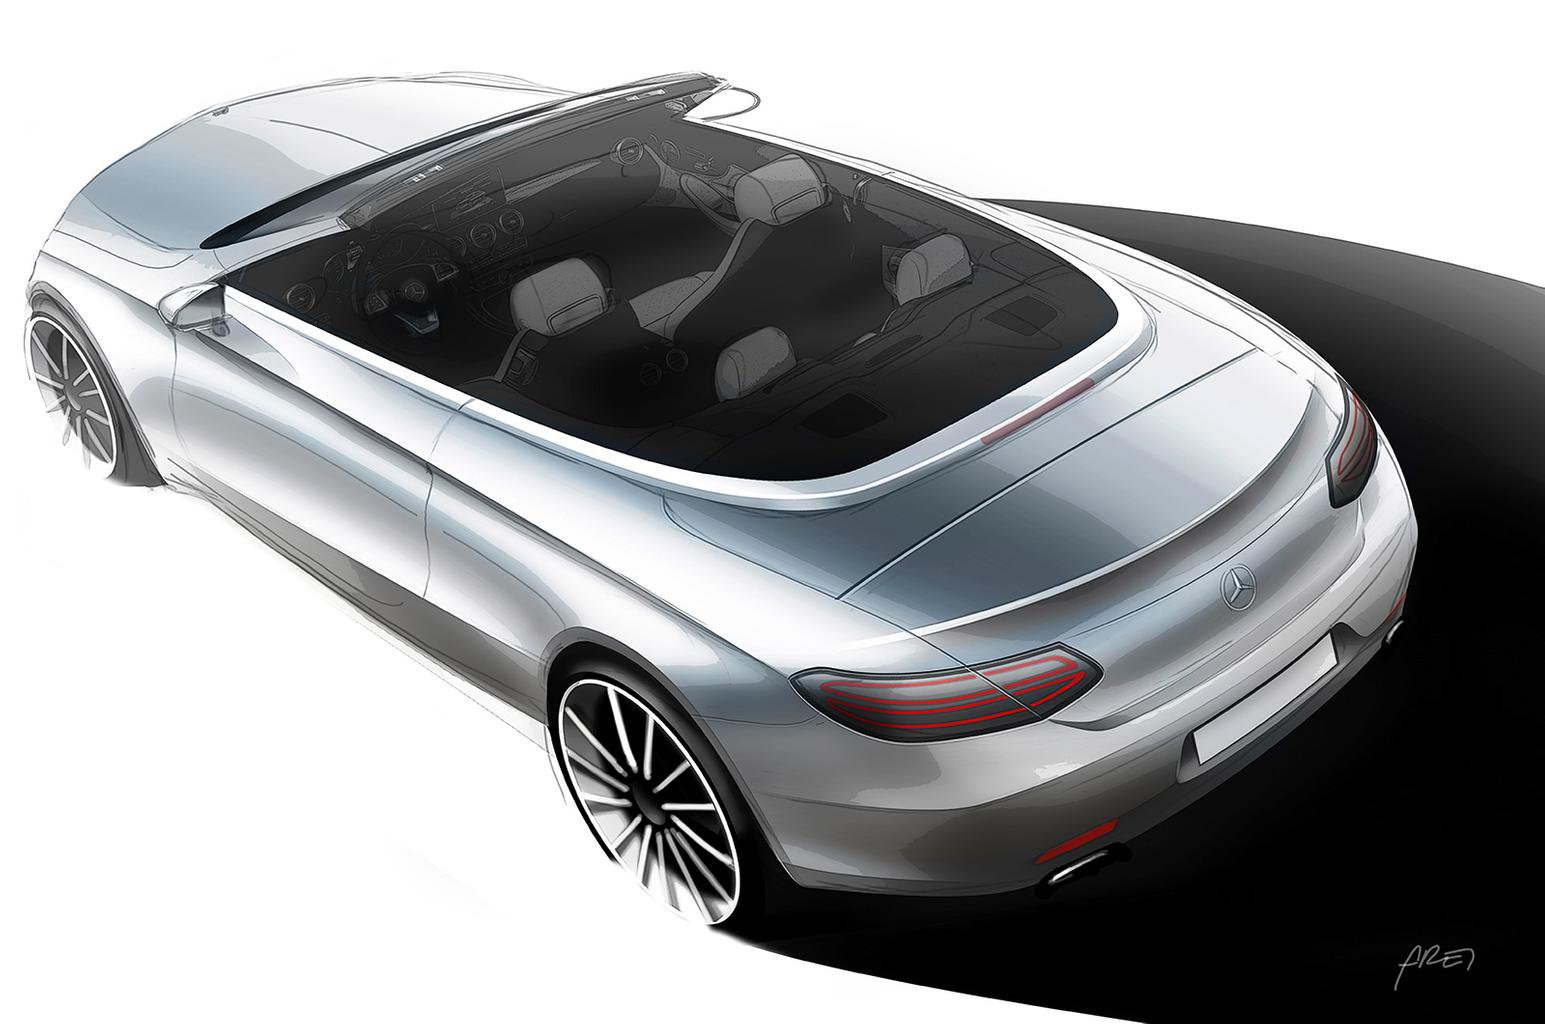 Mercedes-Benz C-Class Cabriolet to be revealed at Geneva motor show